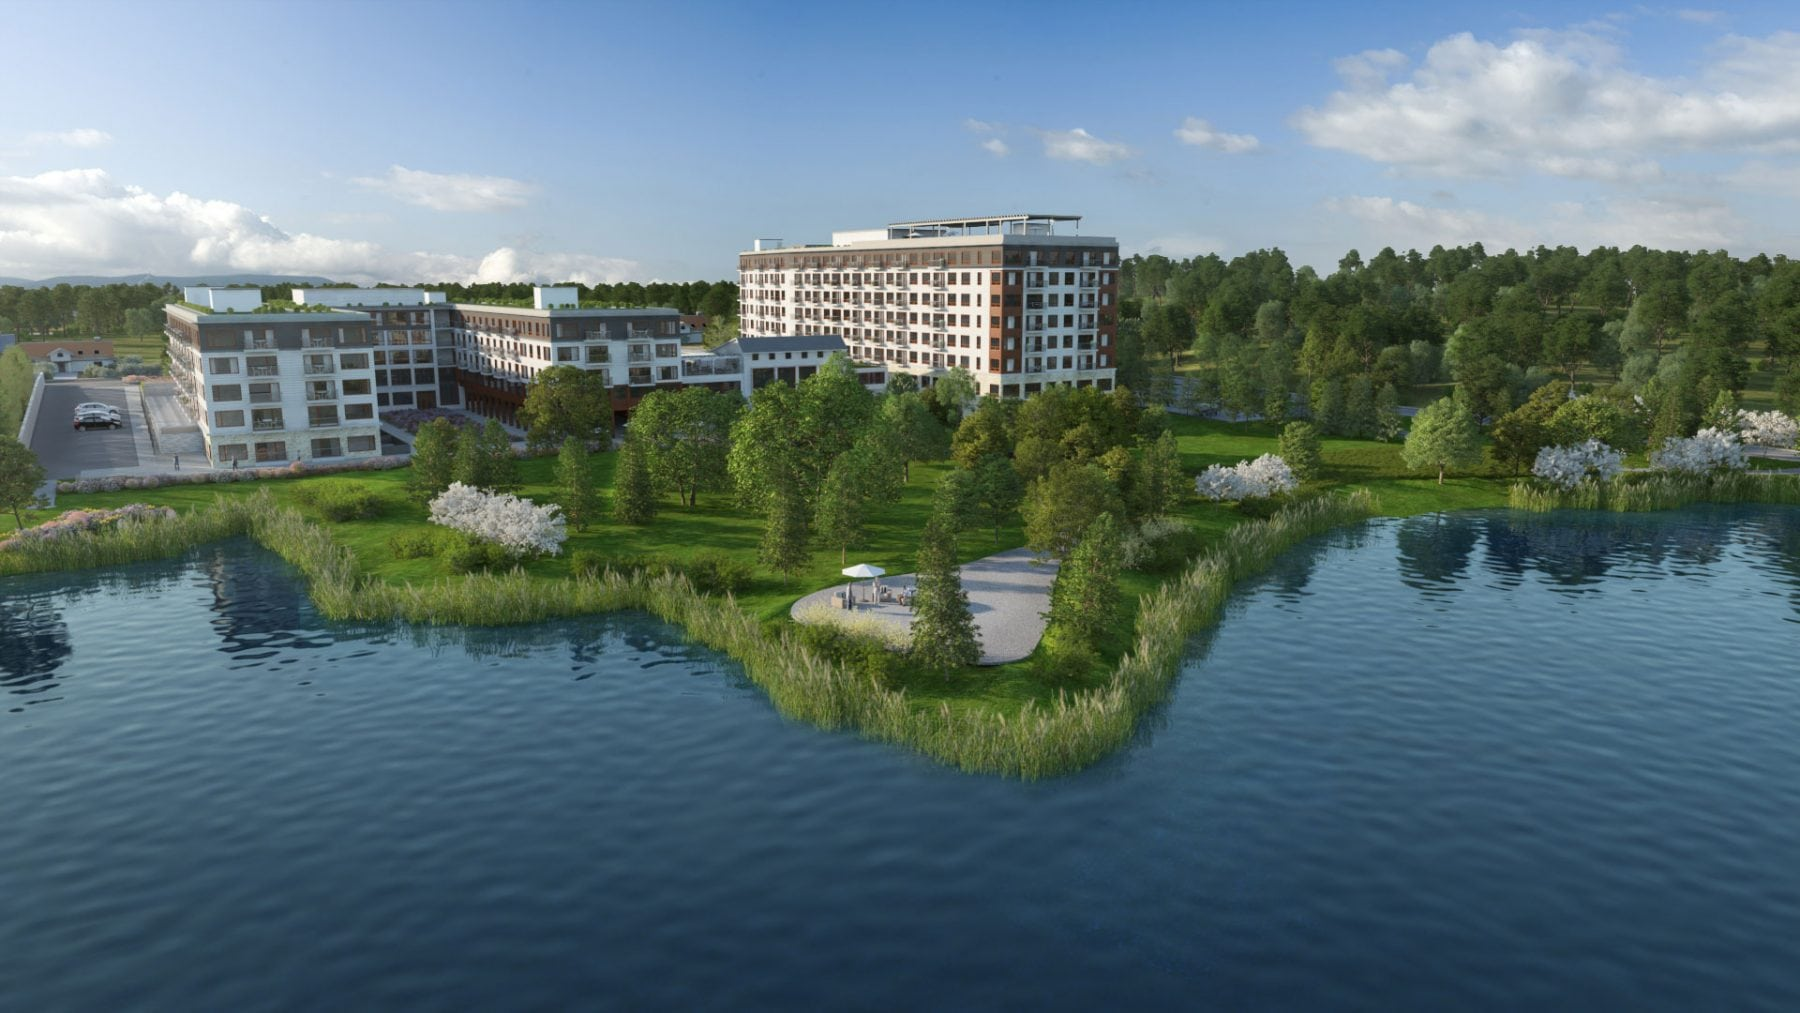 barrie-neighbourhood-city-Condos-landingatlittlelake-mycondoclub